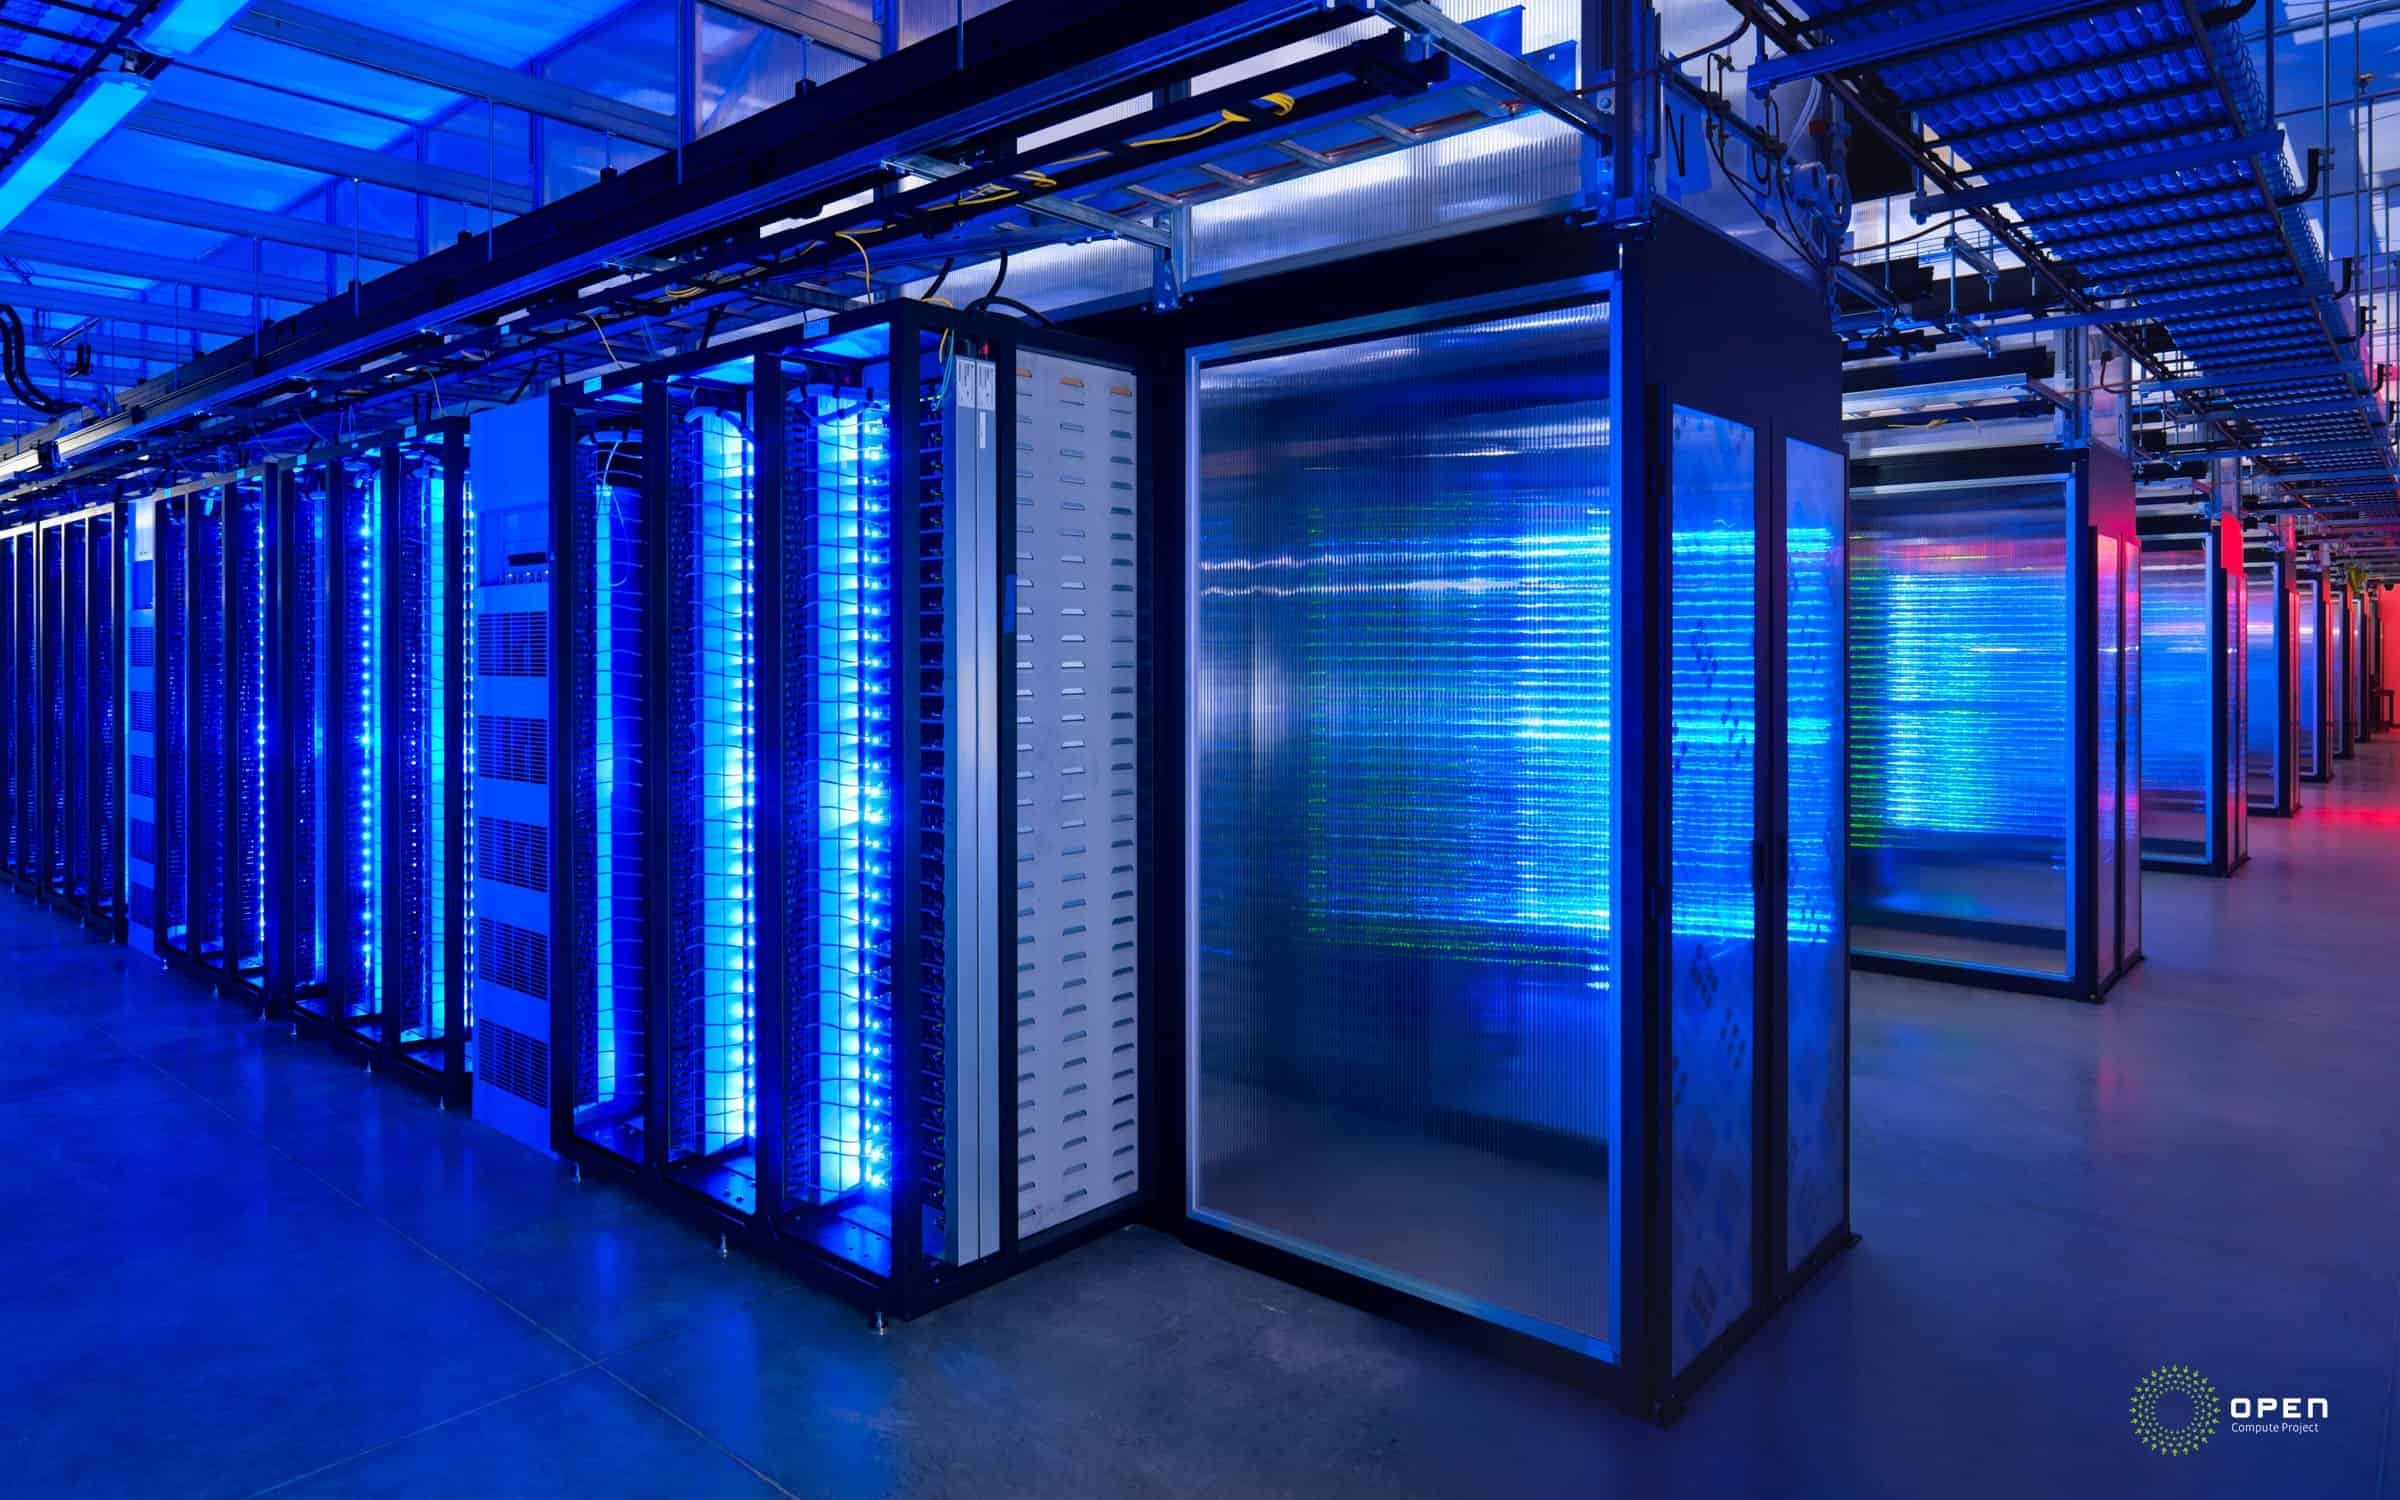 open compute project The open compute project (ocp) is a 501(c)(6) organization, founded in 2011  by facebook, intel, and rackspace, whose mission is to apply.